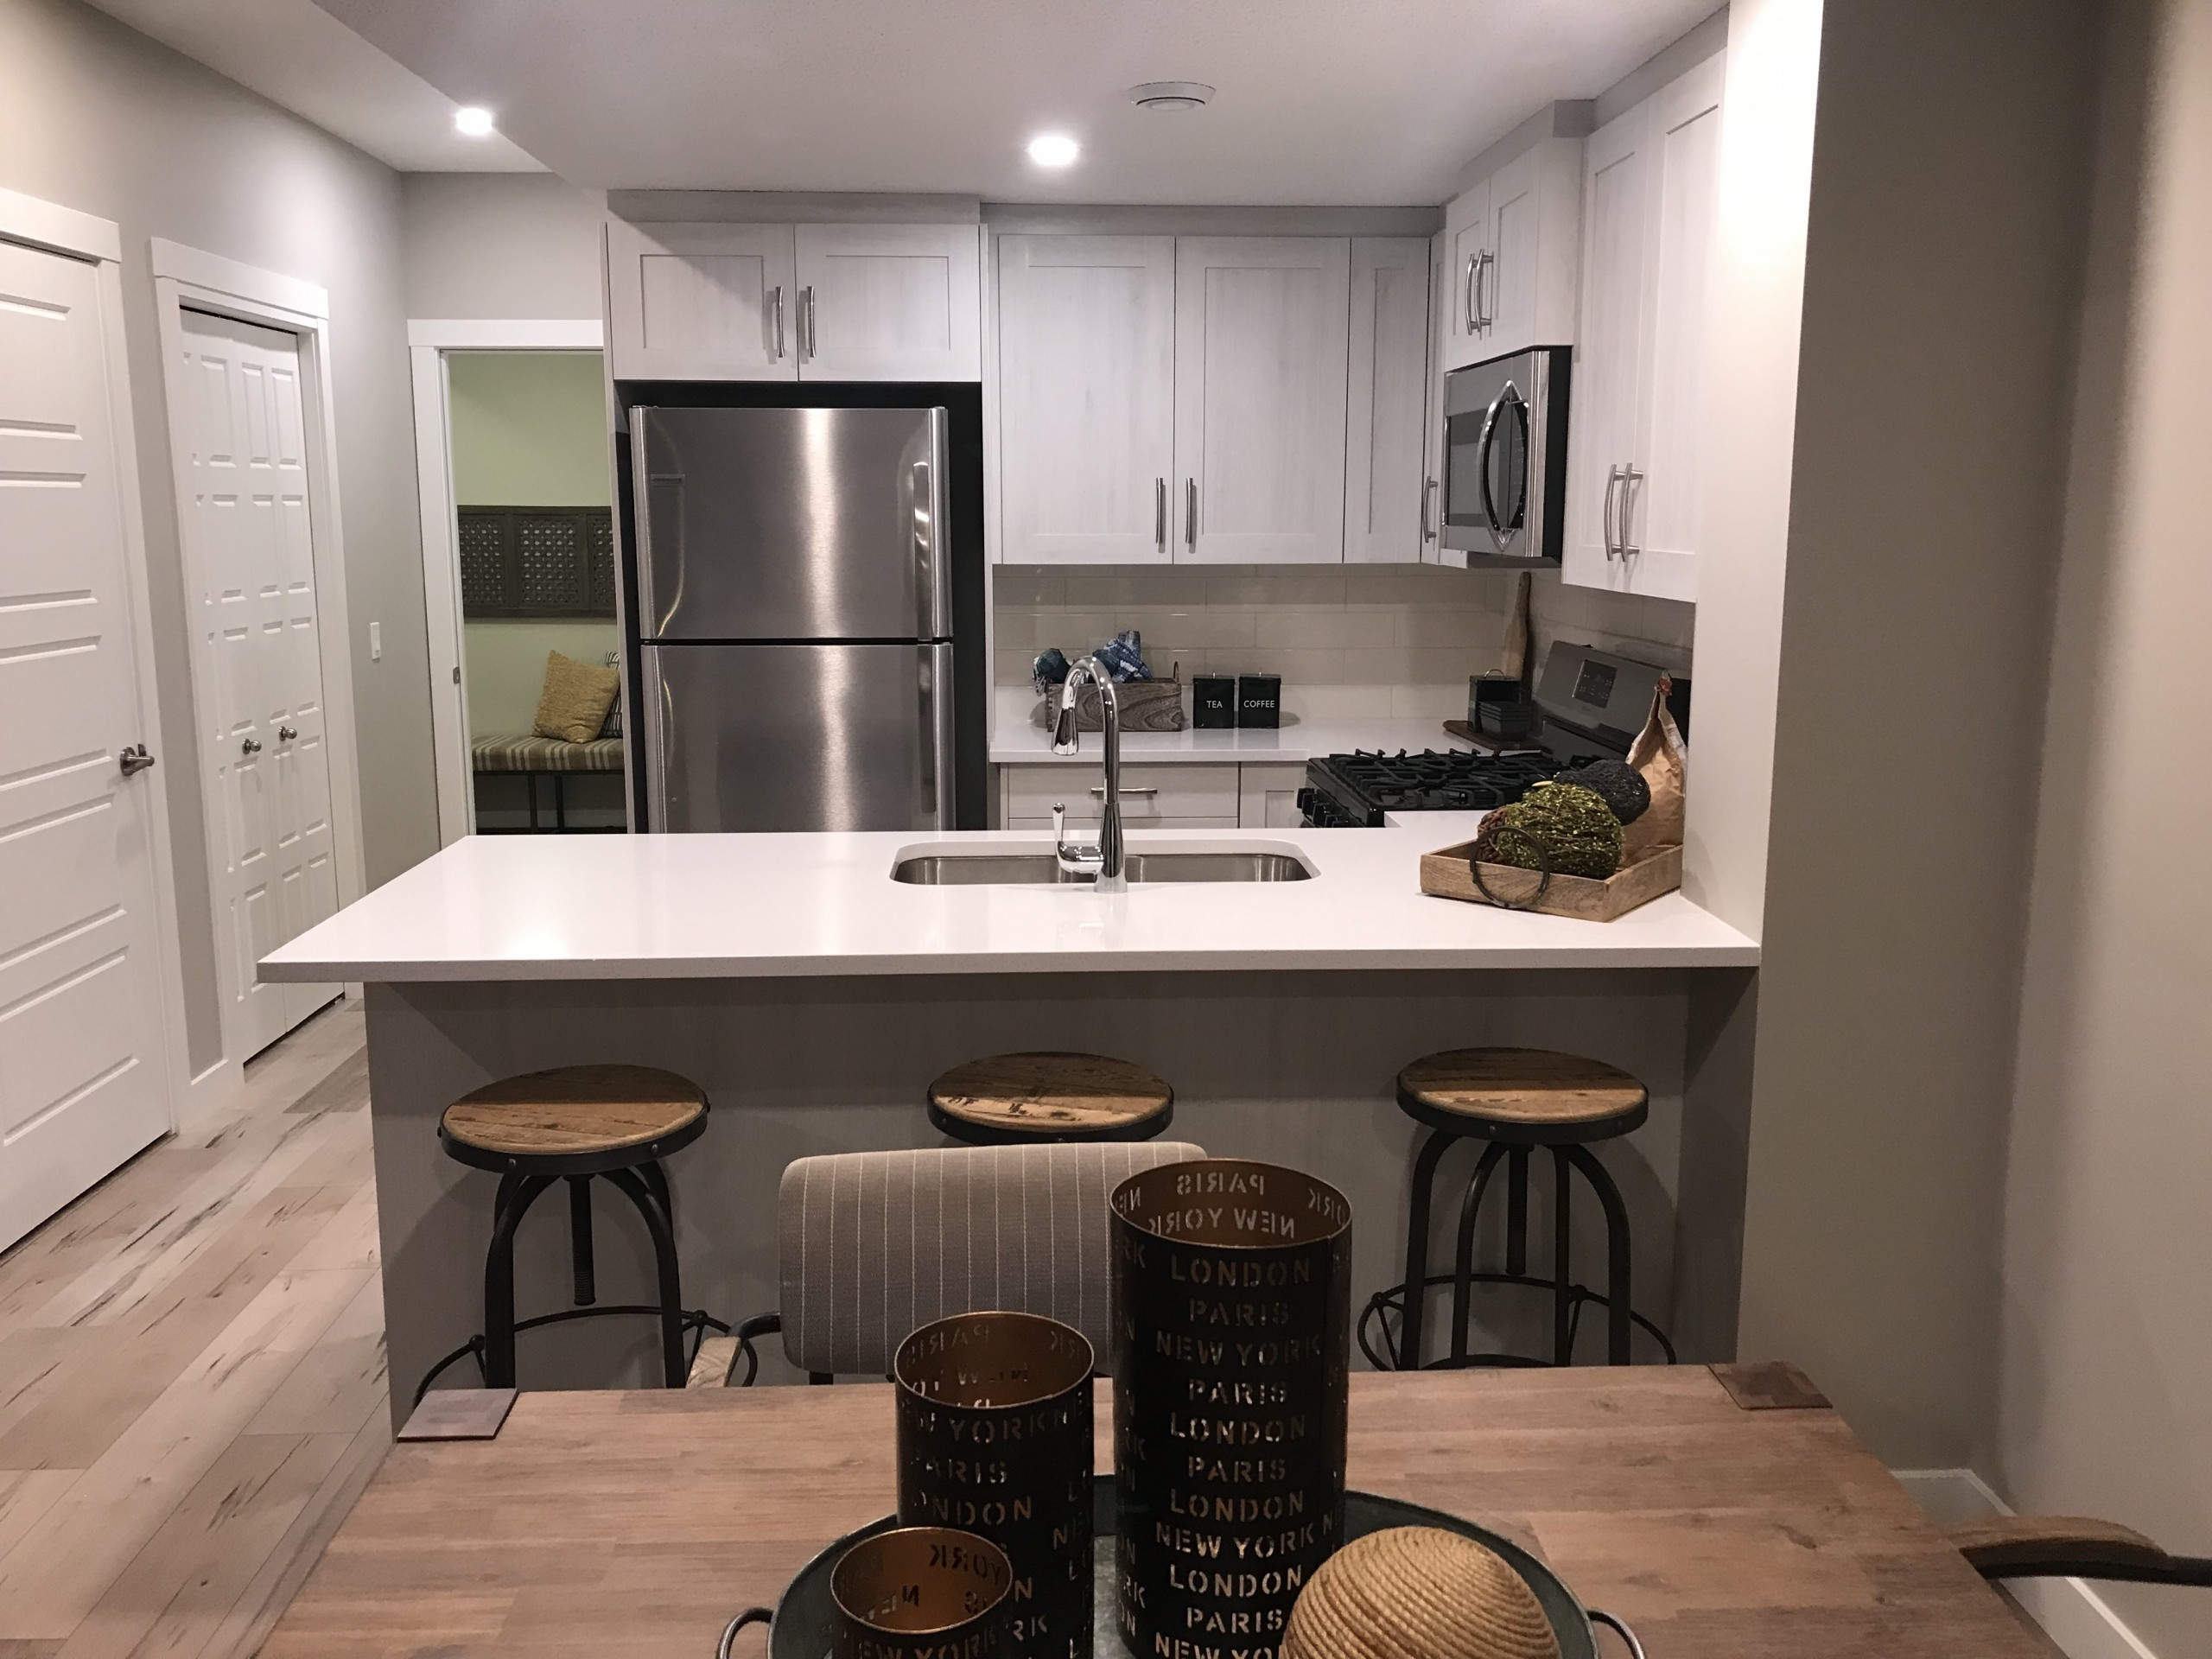 Design of a basement suite showing neutral gray and wood colour scheme with white countertops and accent trim.